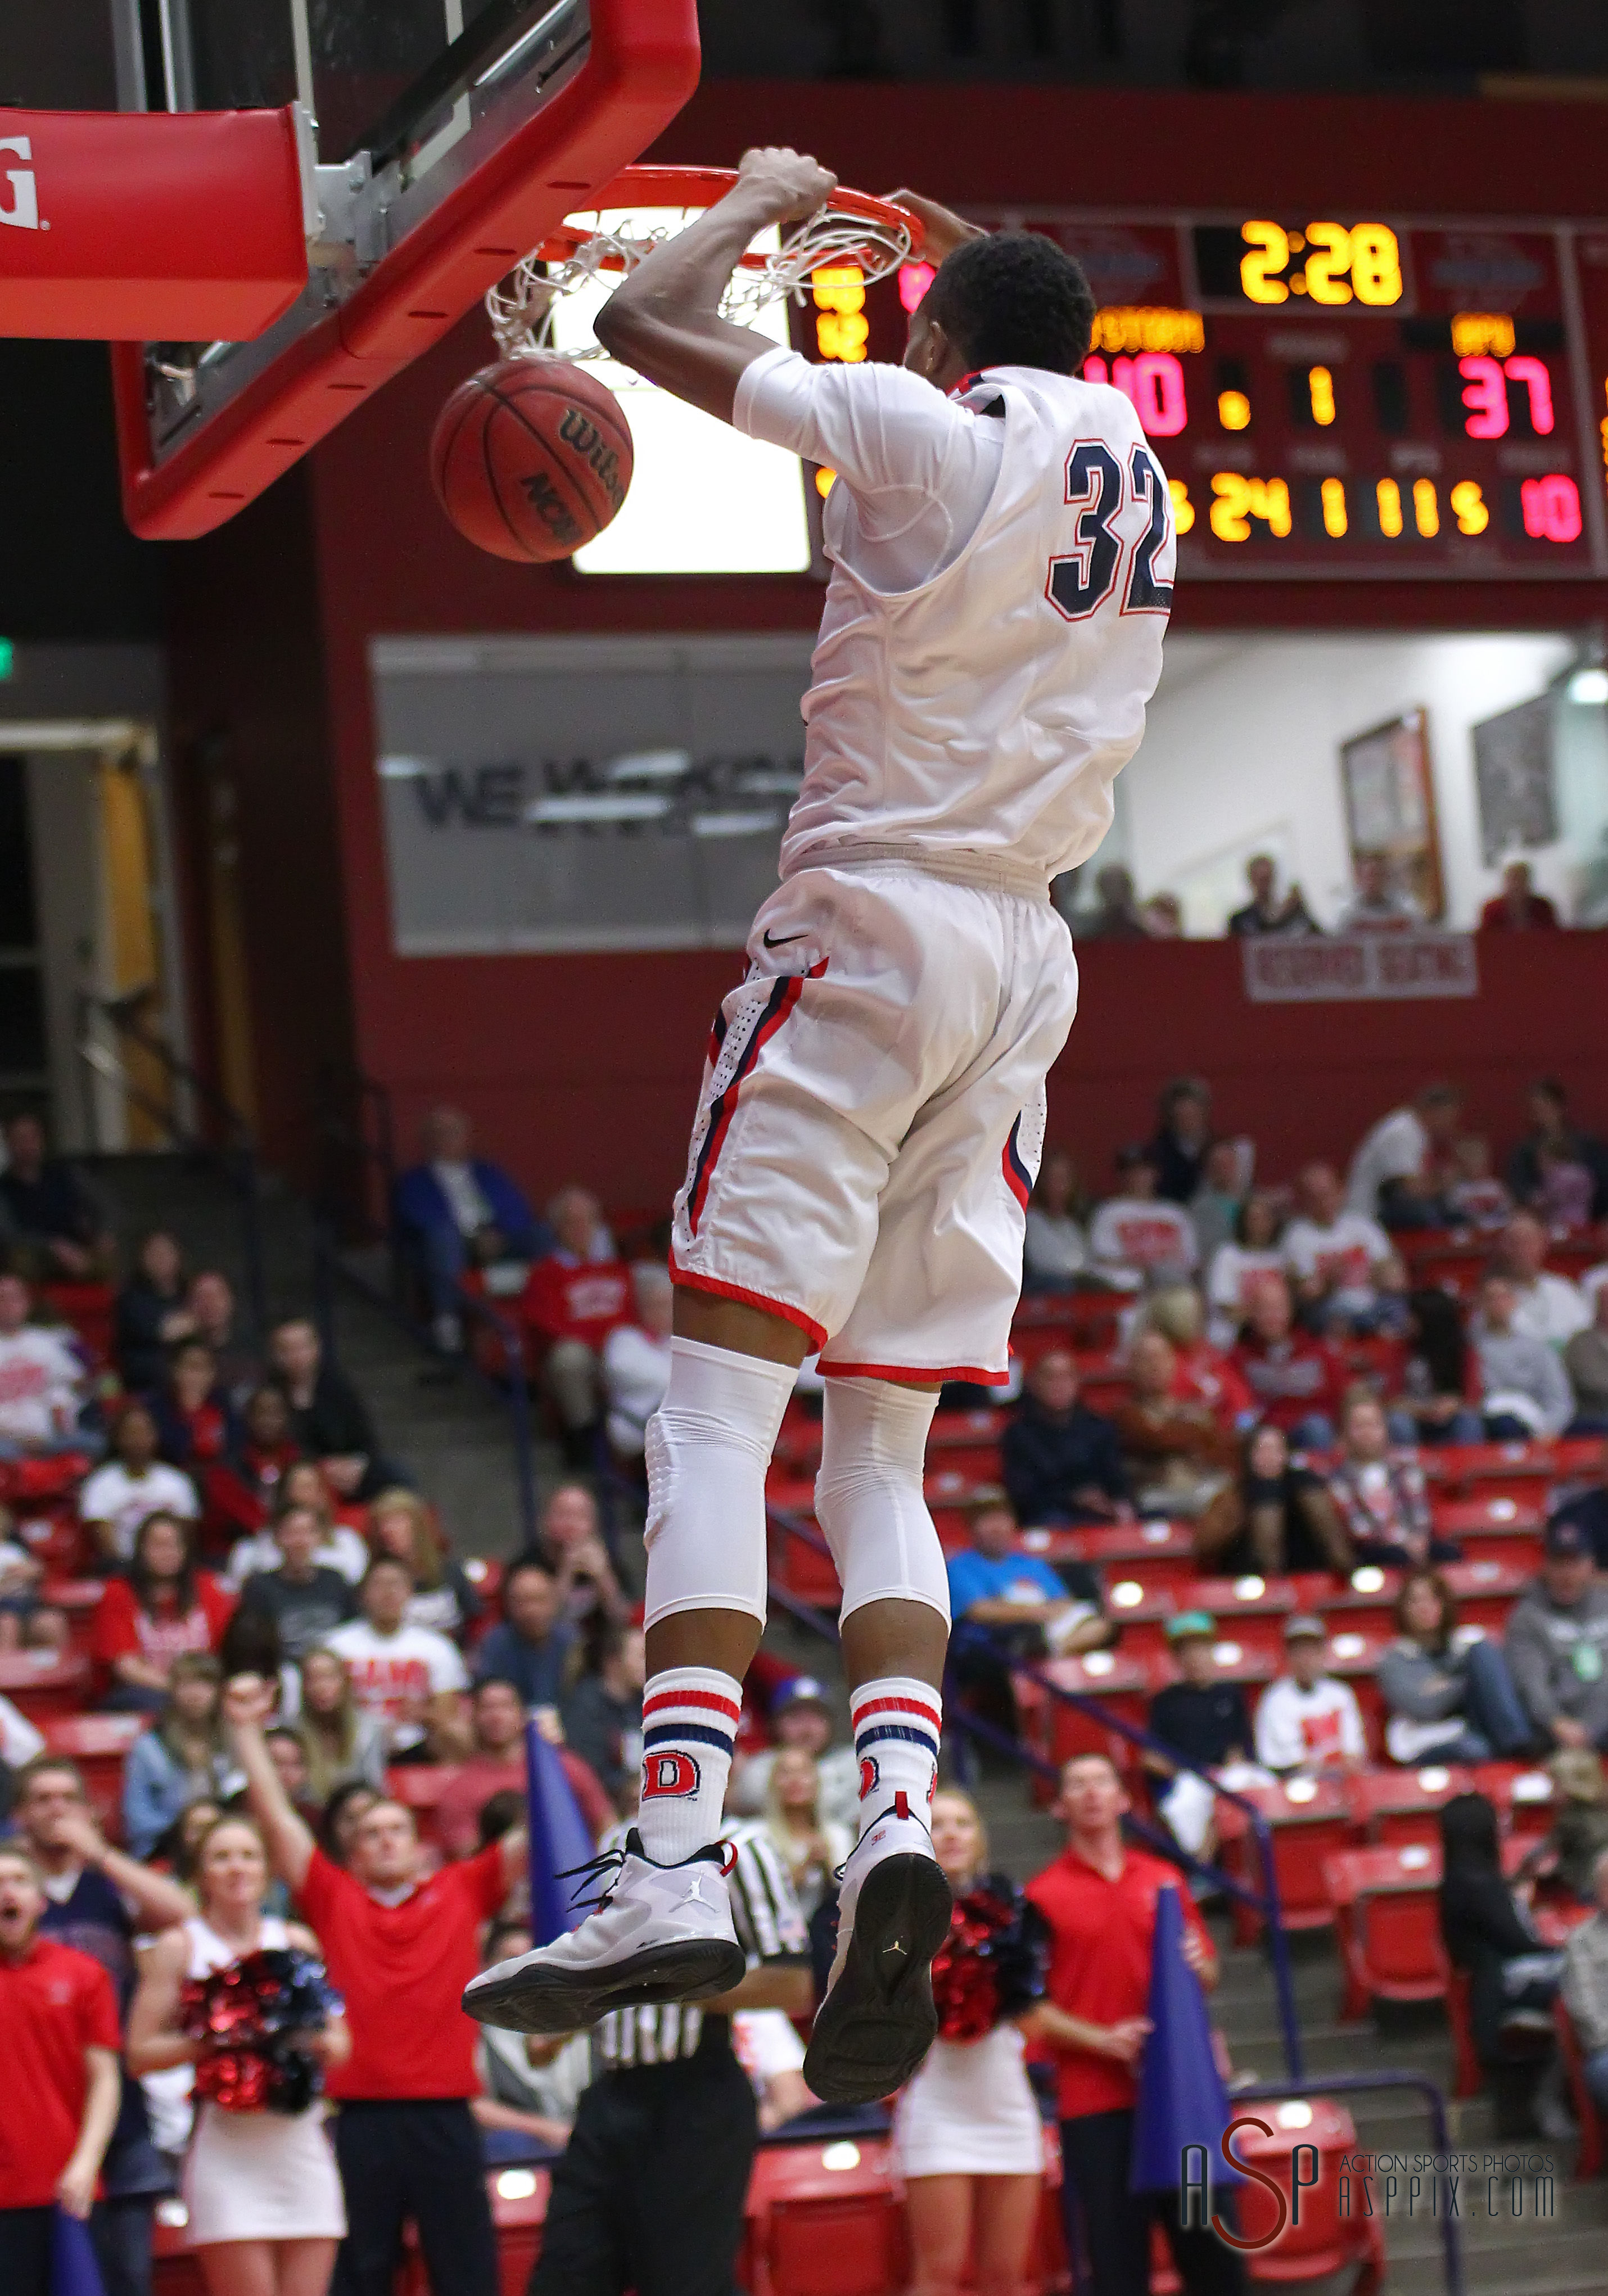 DSU slays another giant as Red Storm bounces APU in overtime thriller – St George News